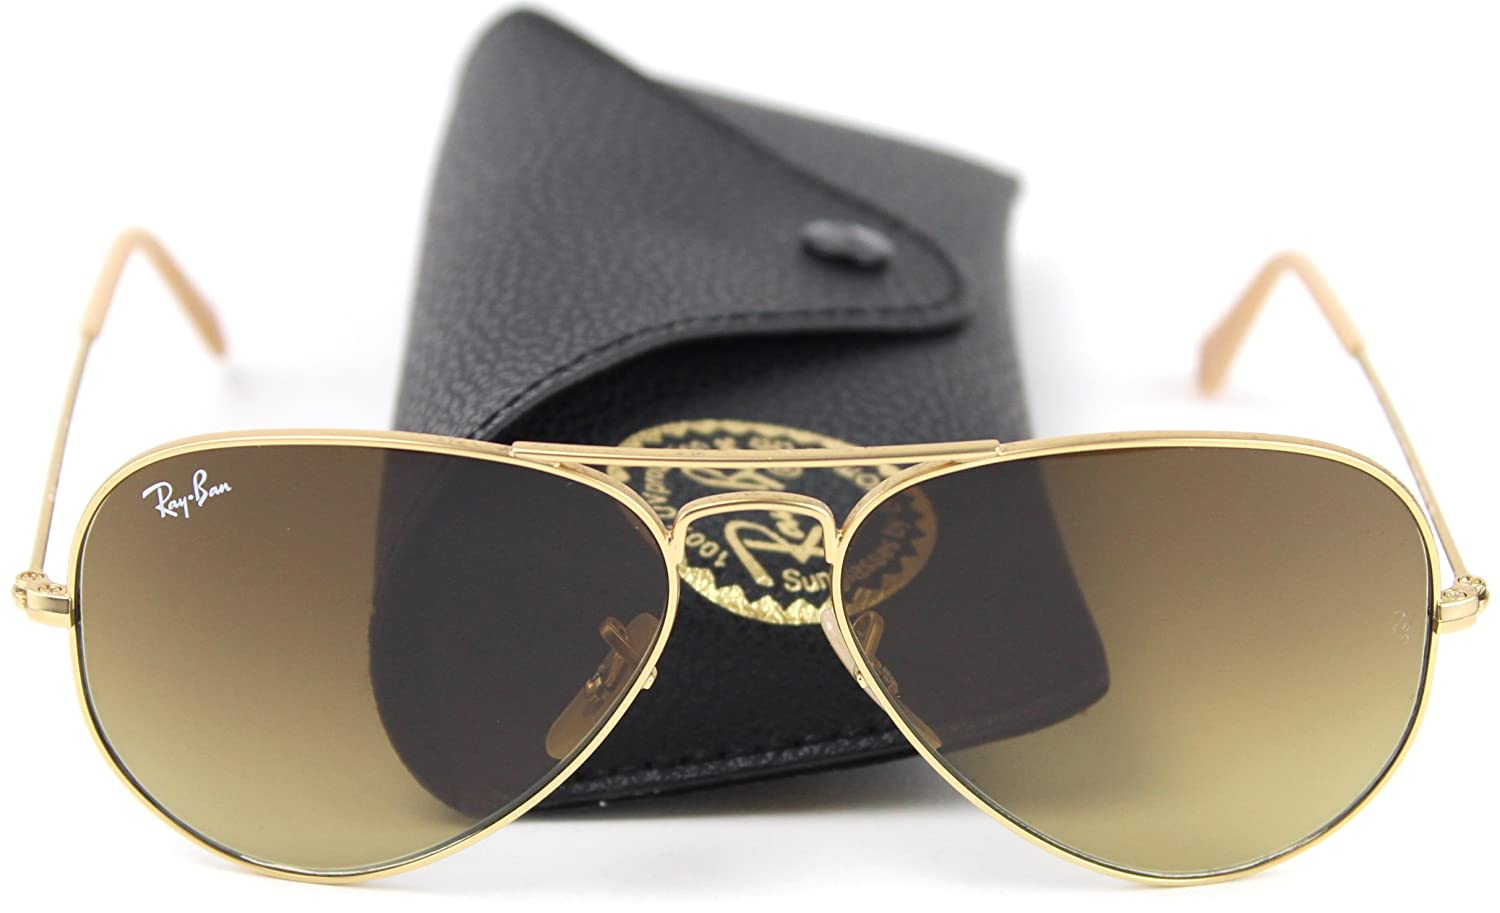 4909f3ded0 Amazon.com  Ray-Ban RB3025 112 85 Sunglasses Gold Frame   Brown Gradient  Lens 58mm  Shoes